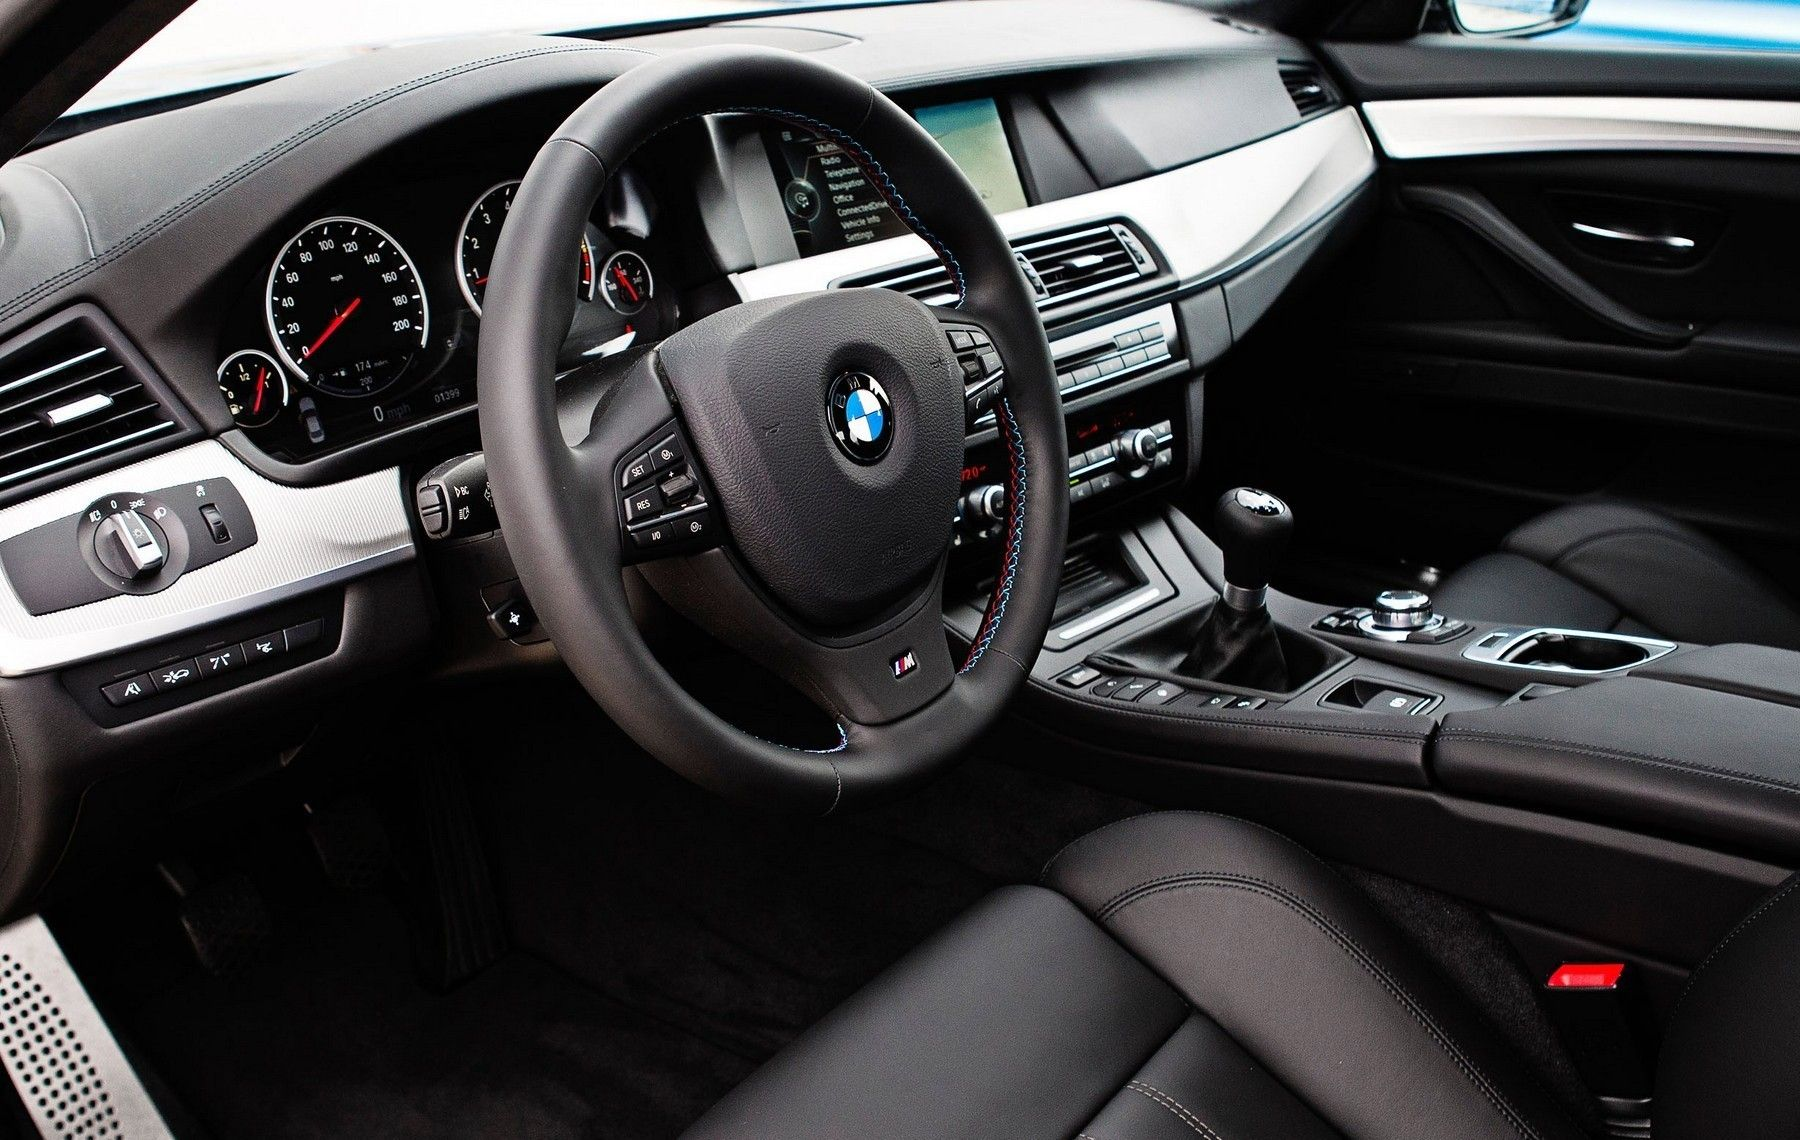 Car Interior HD Wallpapers Images Pictures Photos Download